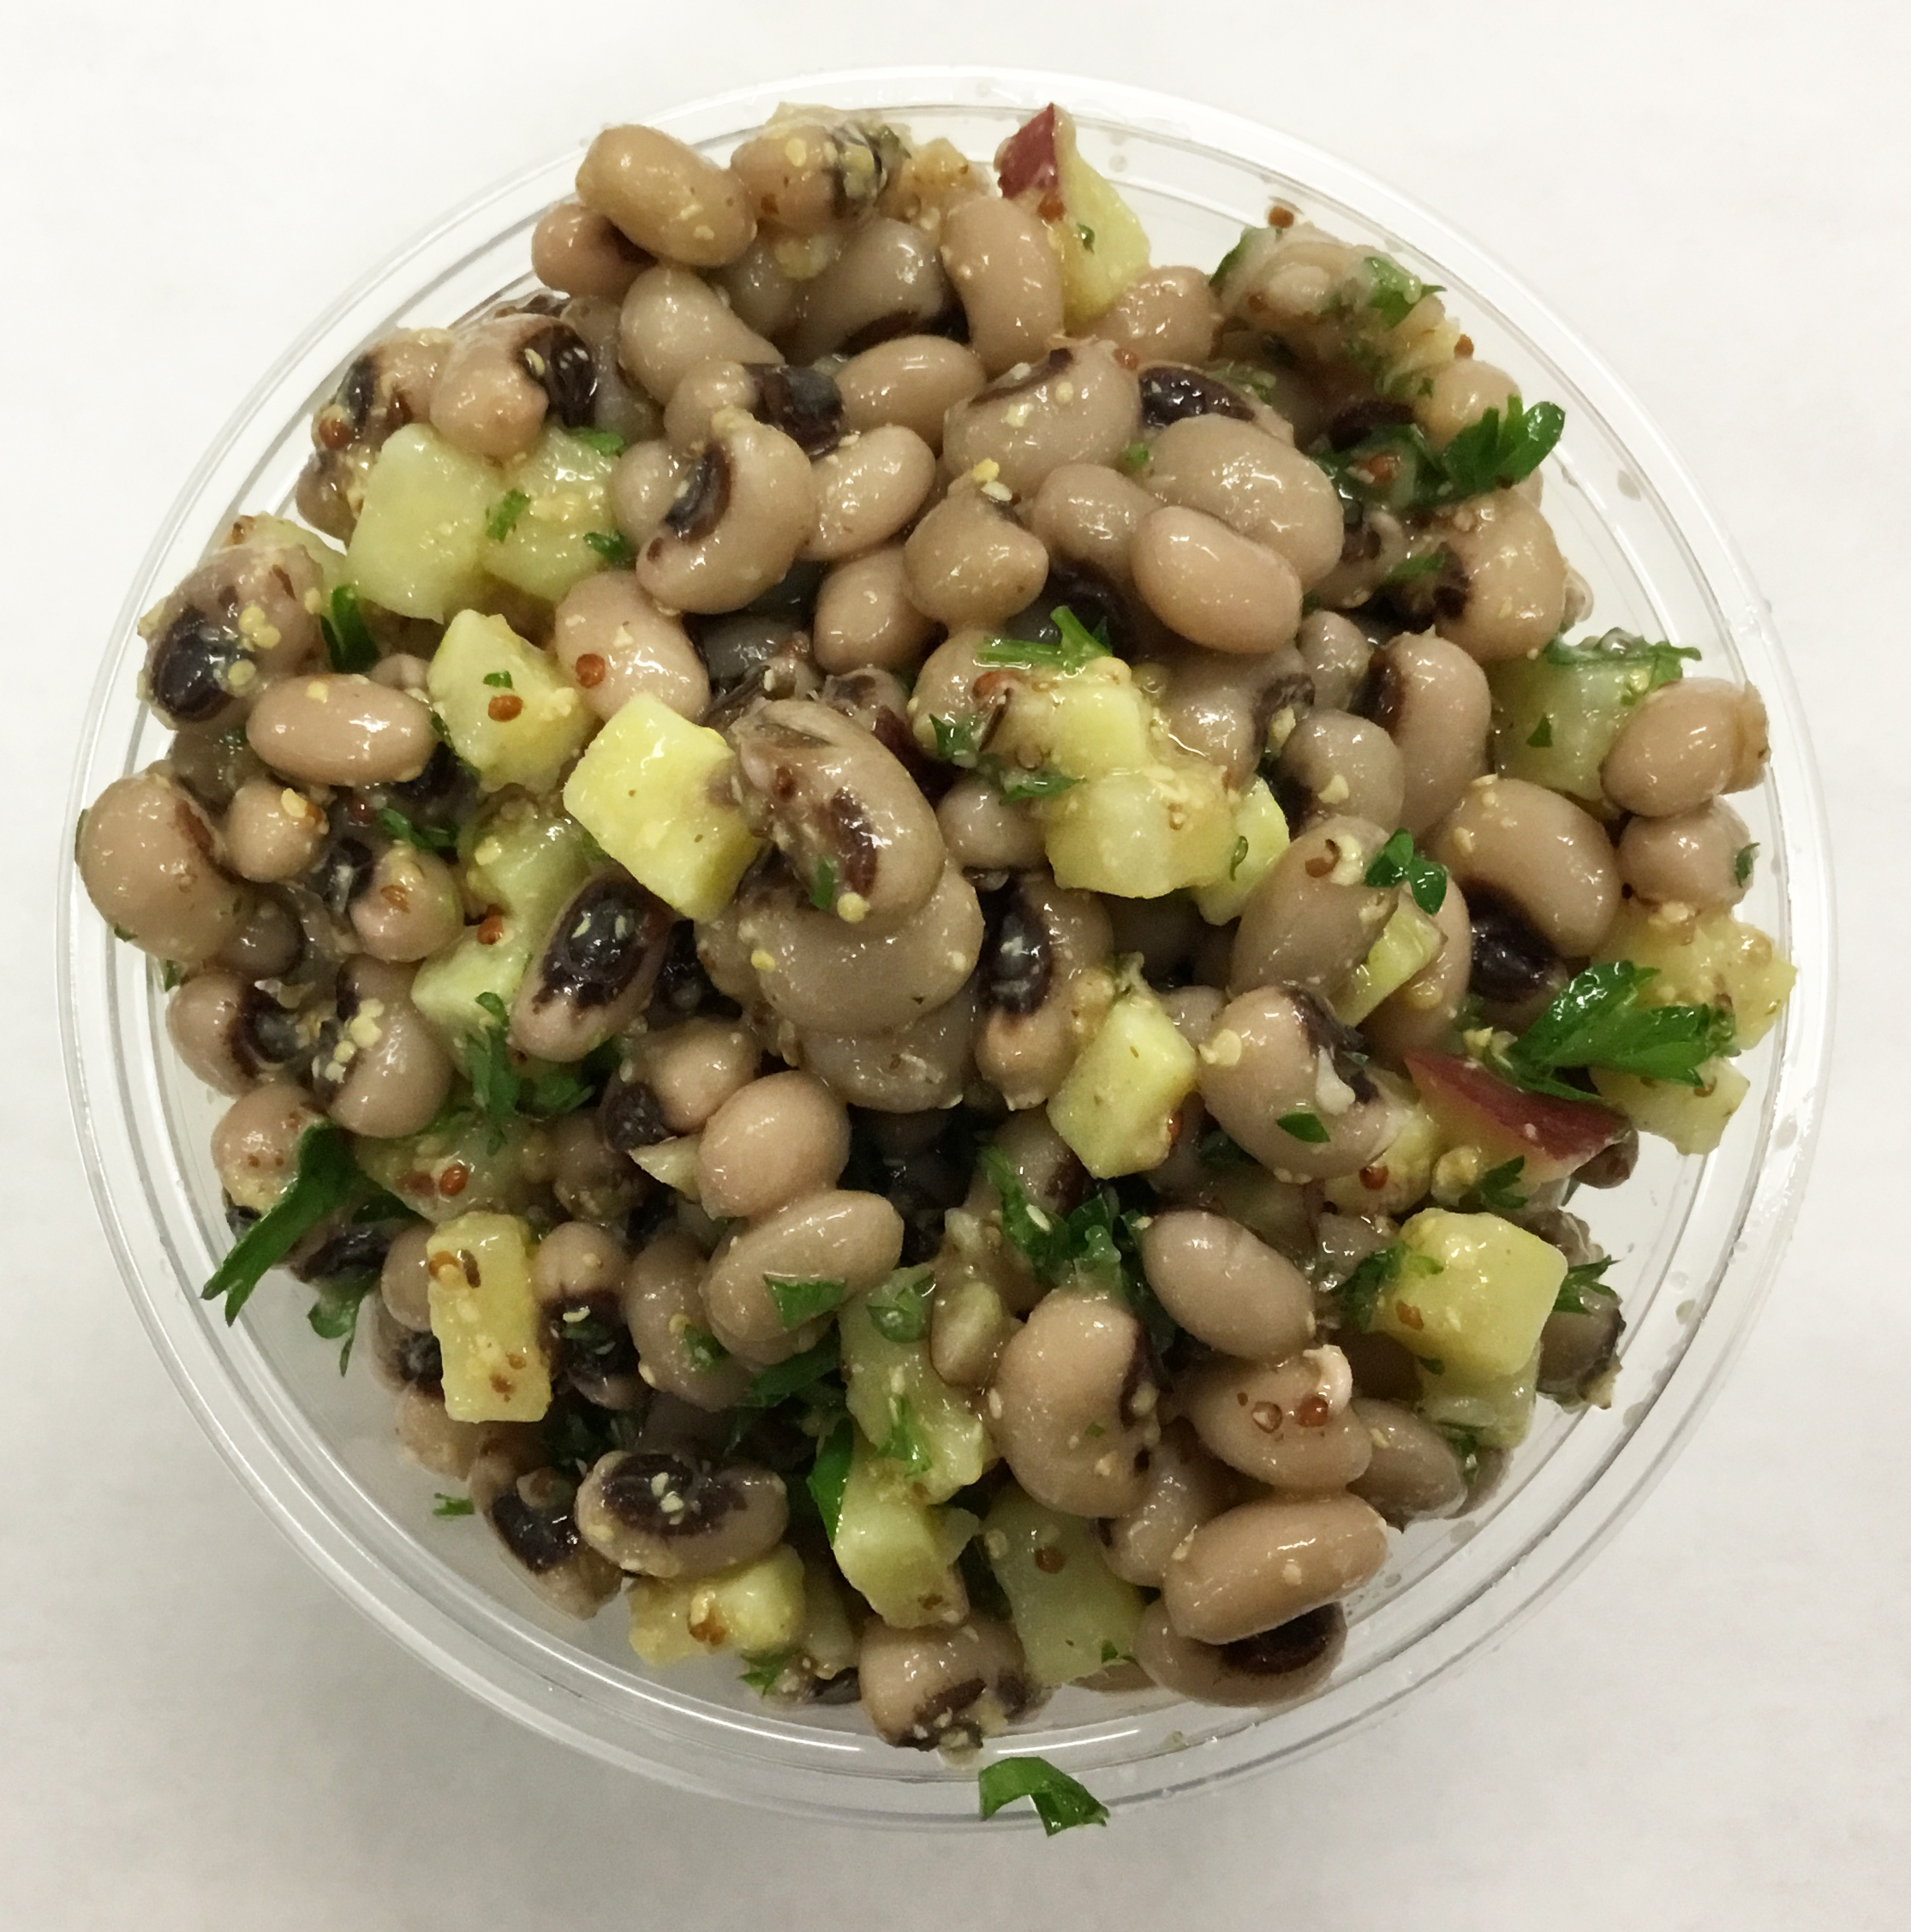 Black eyed peas with Japanese sweet potatoes and a stone ground mustard dressing.